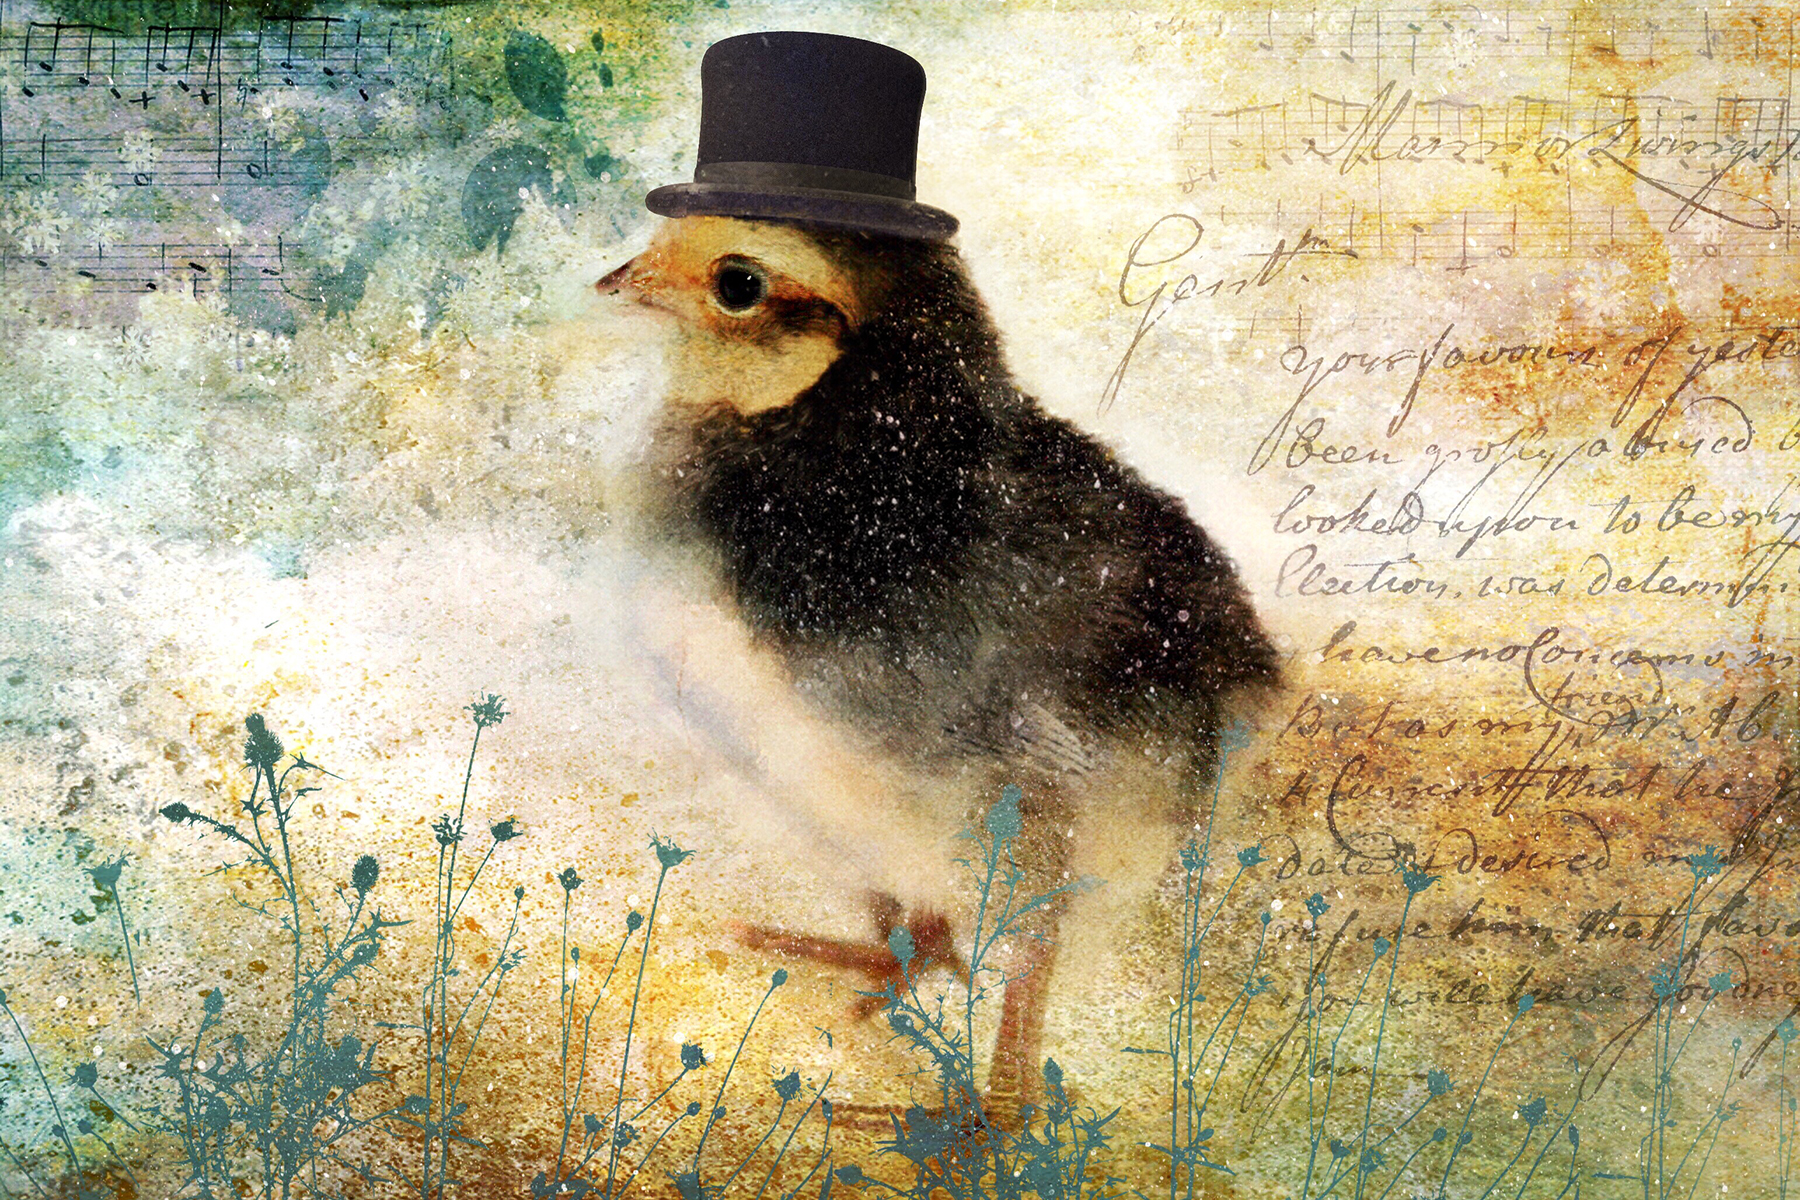 Top Hat Digital Art Collage Postcard To Print, Frame or Send – Free Download